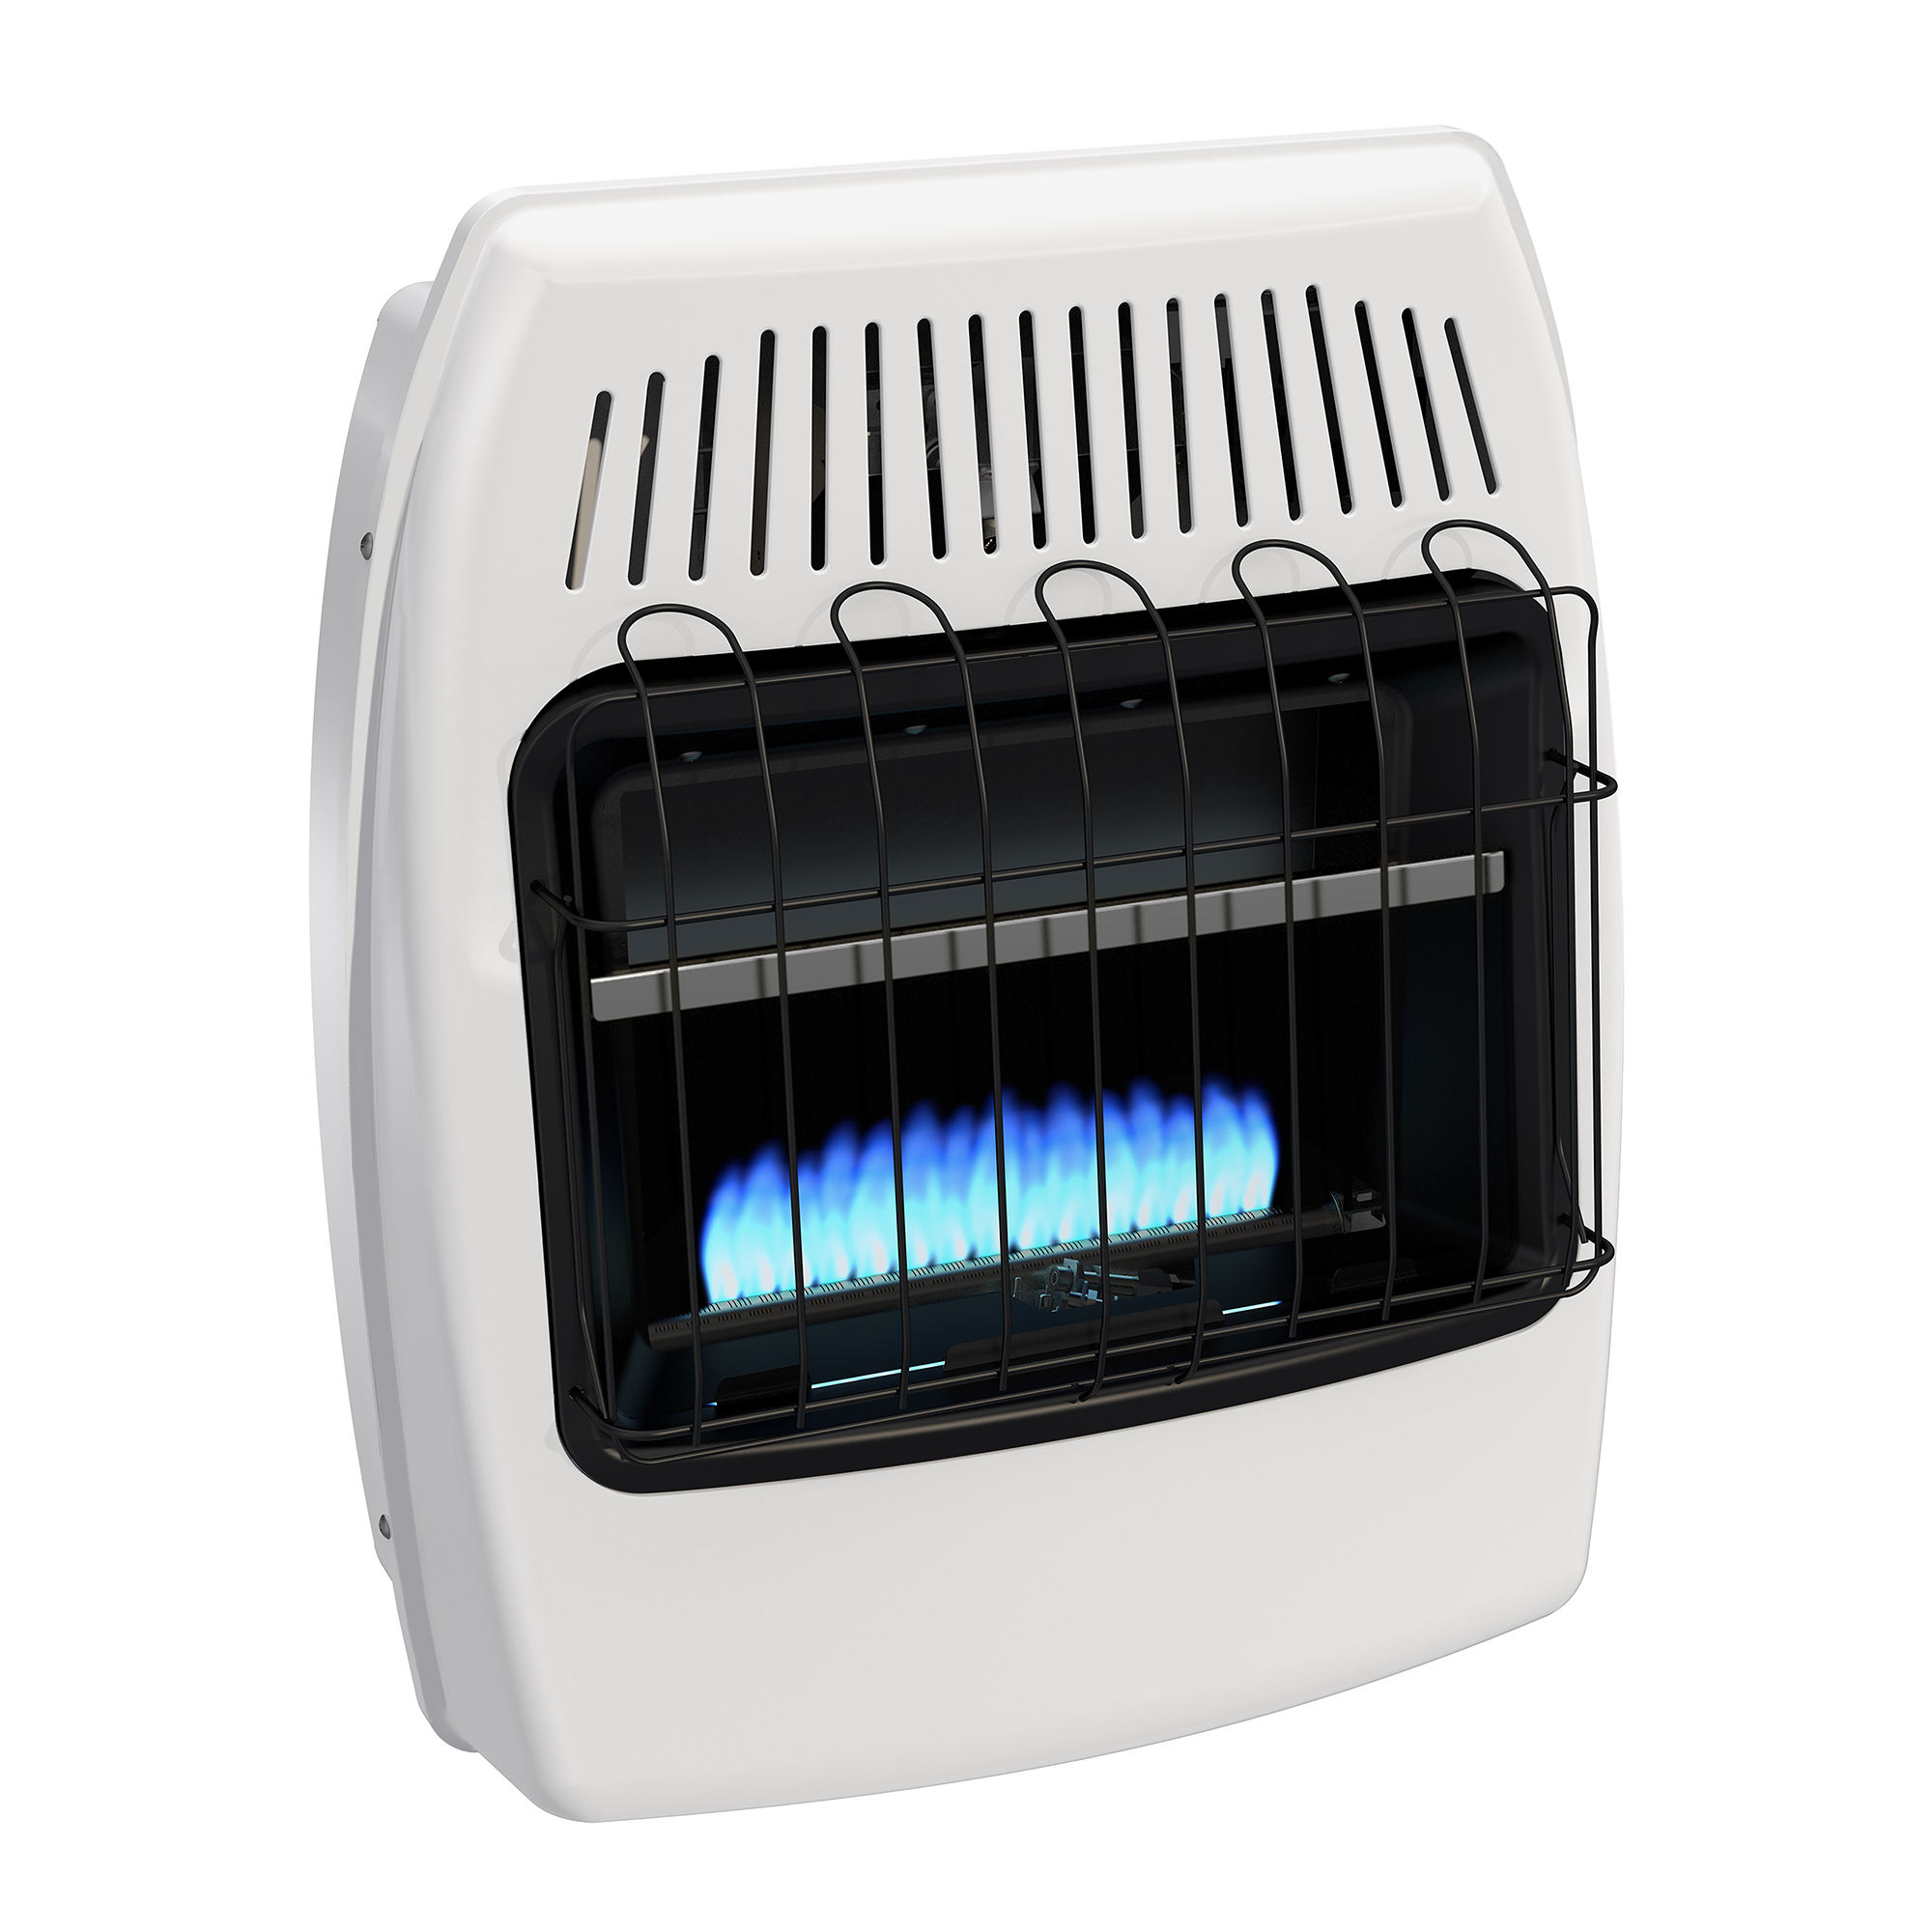 Dyna-Glo 20,000 BTU Natural Gas Blue Flame Vent Free Wall Heater